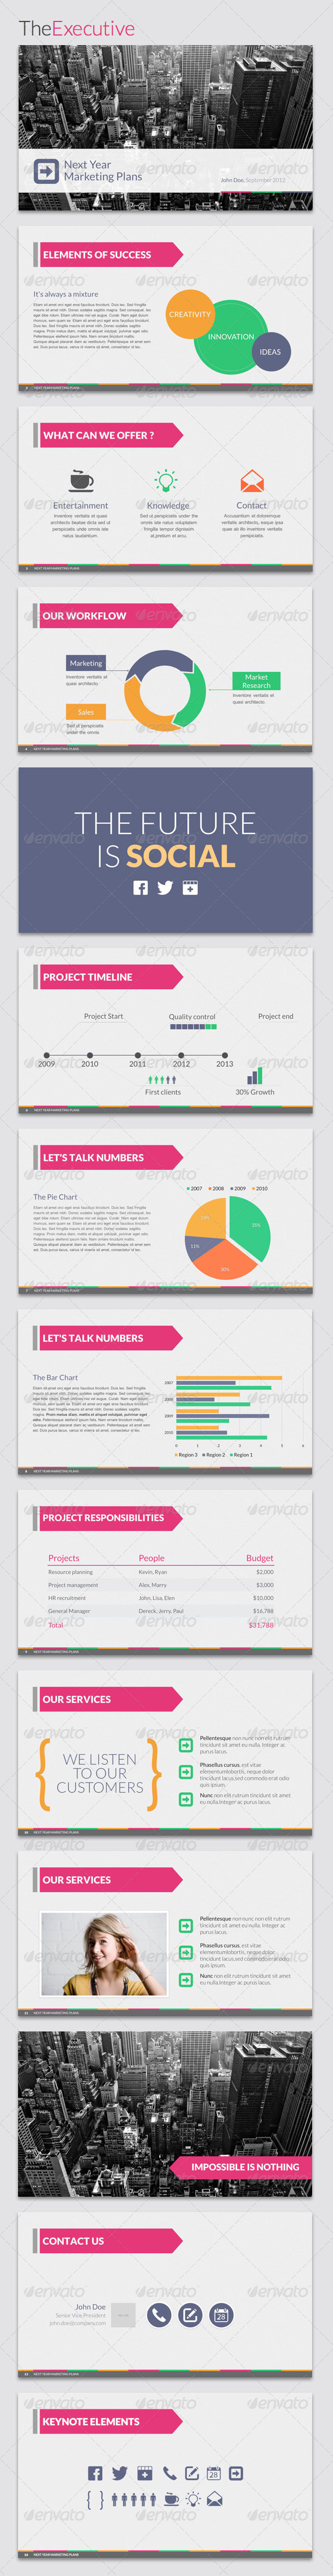 GraphicRiver TheExecutive Powerpoint Template 3302125